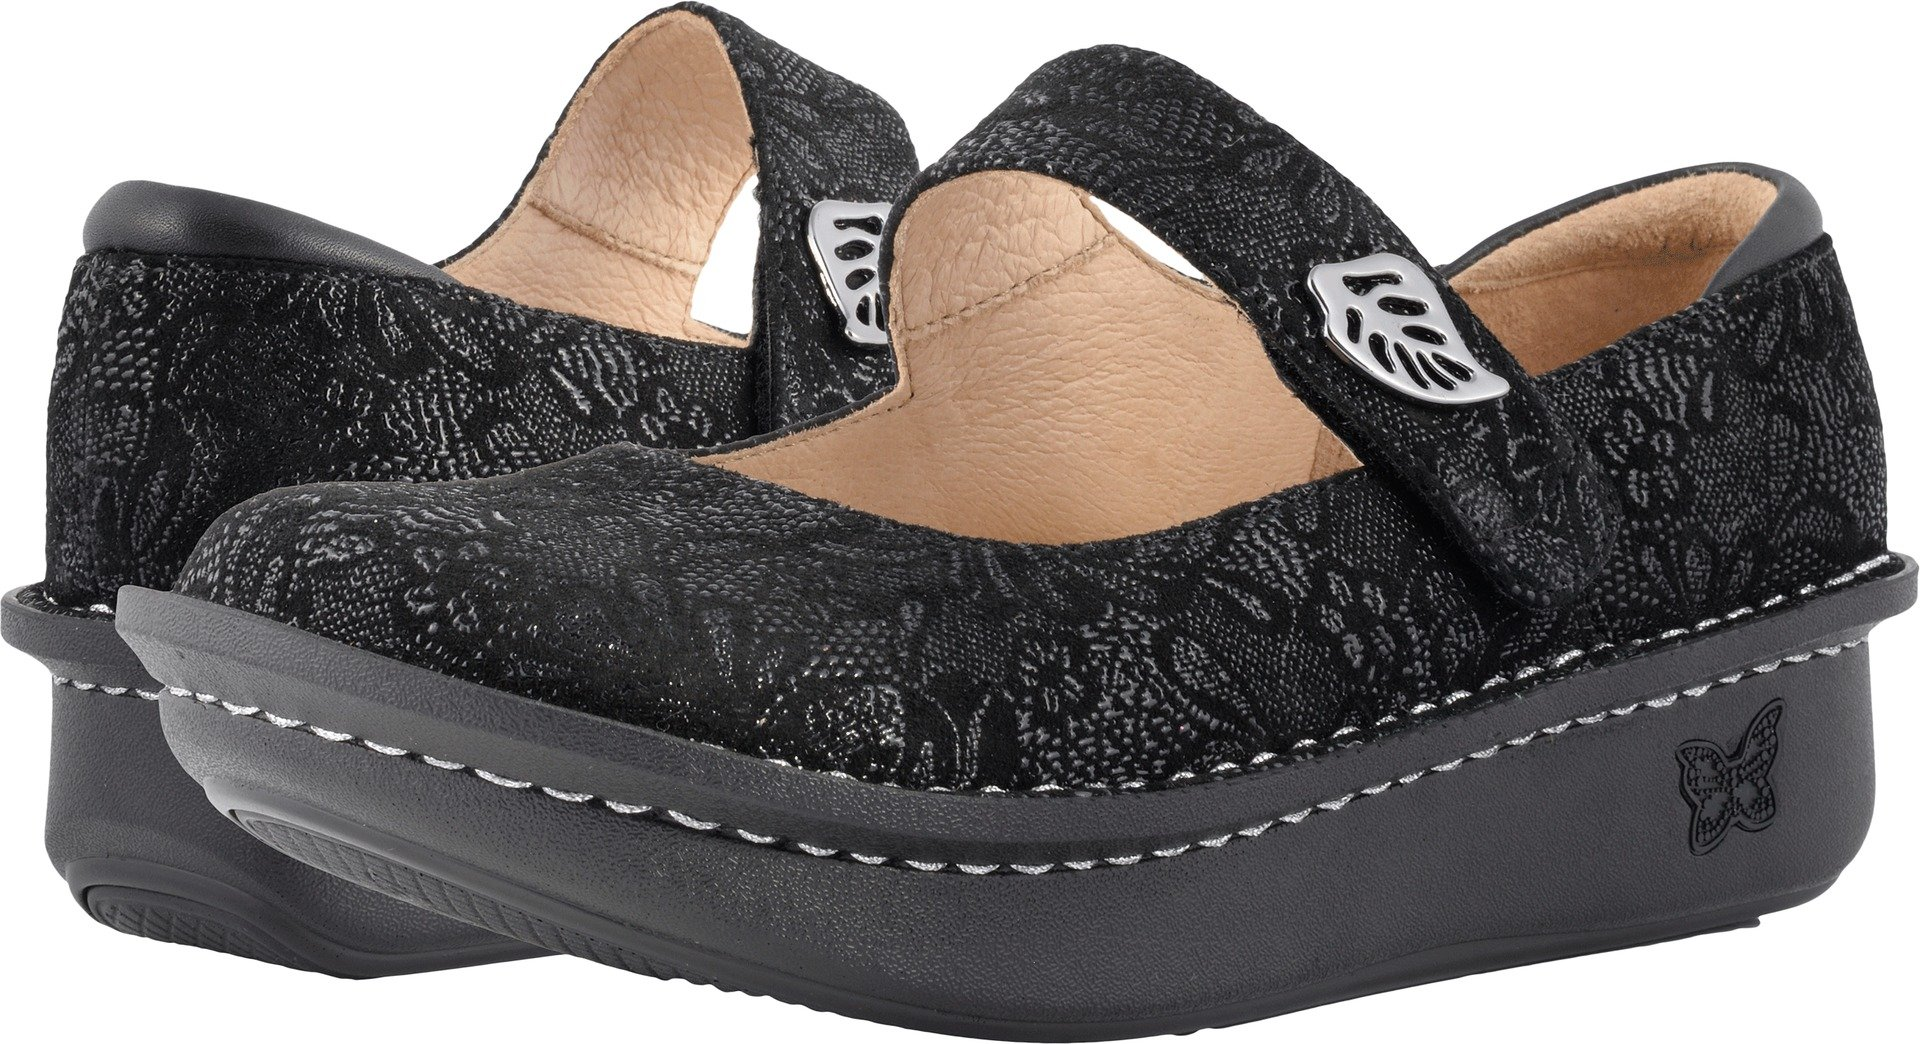 Alegria Women's Paloma Exclusive Black Leaf Mary Jane